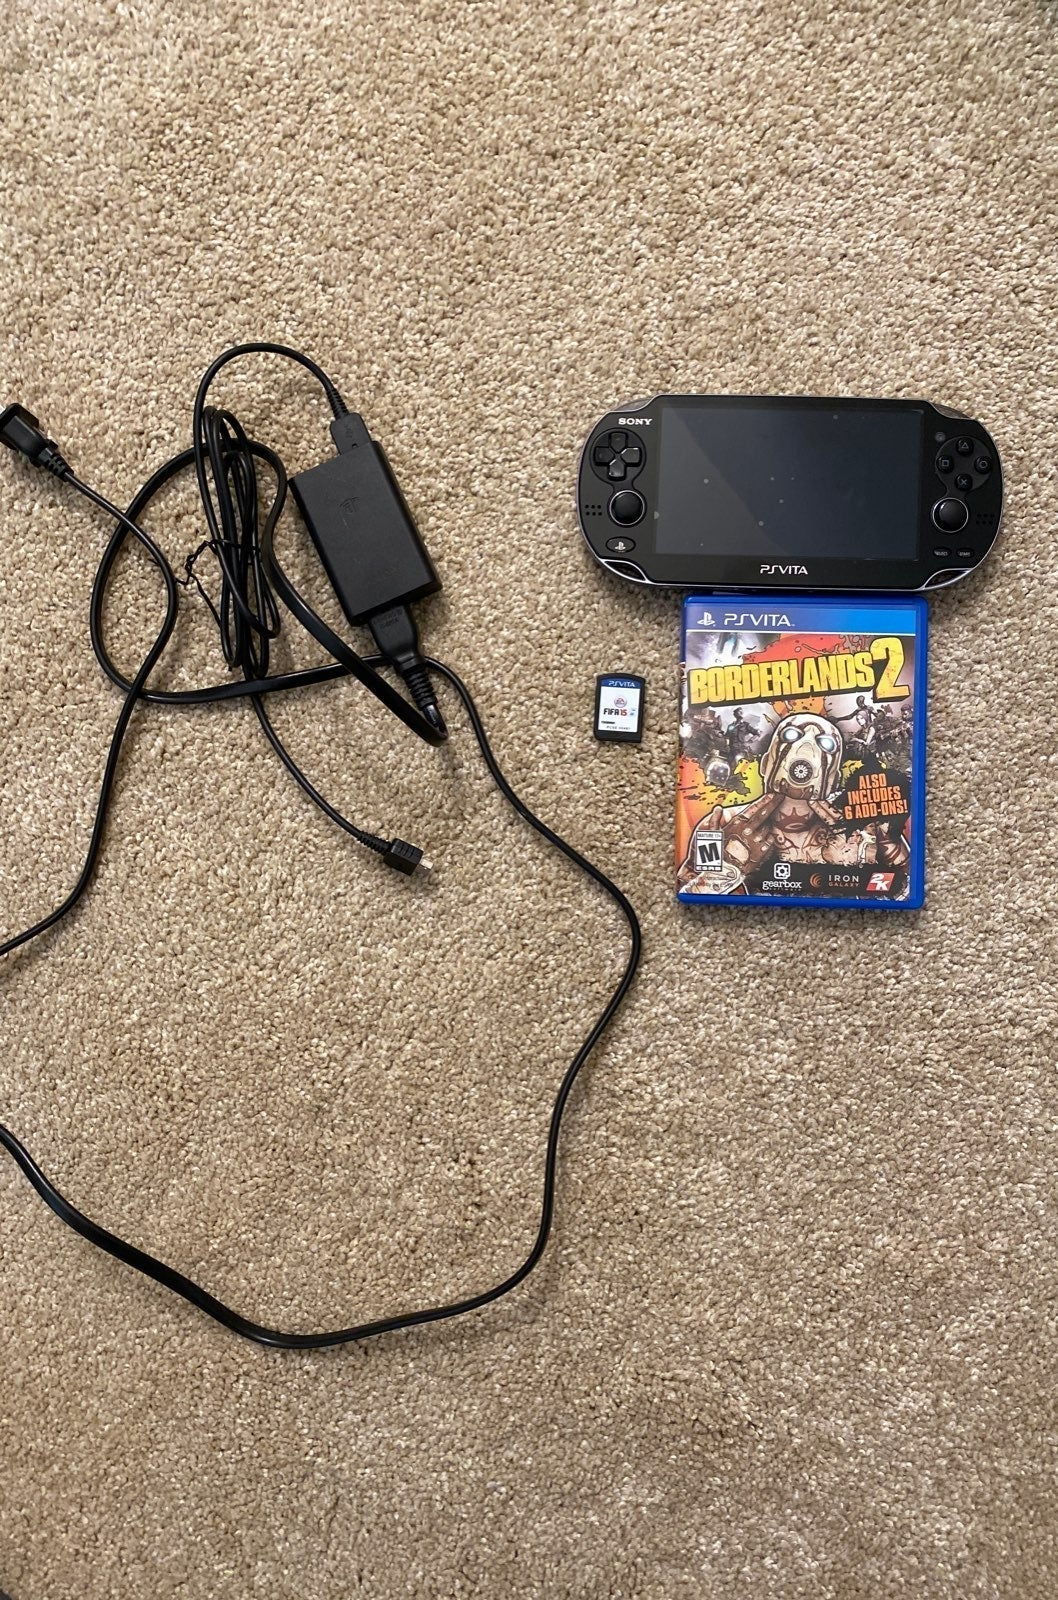 PS Vita Black w/ Charger & Games